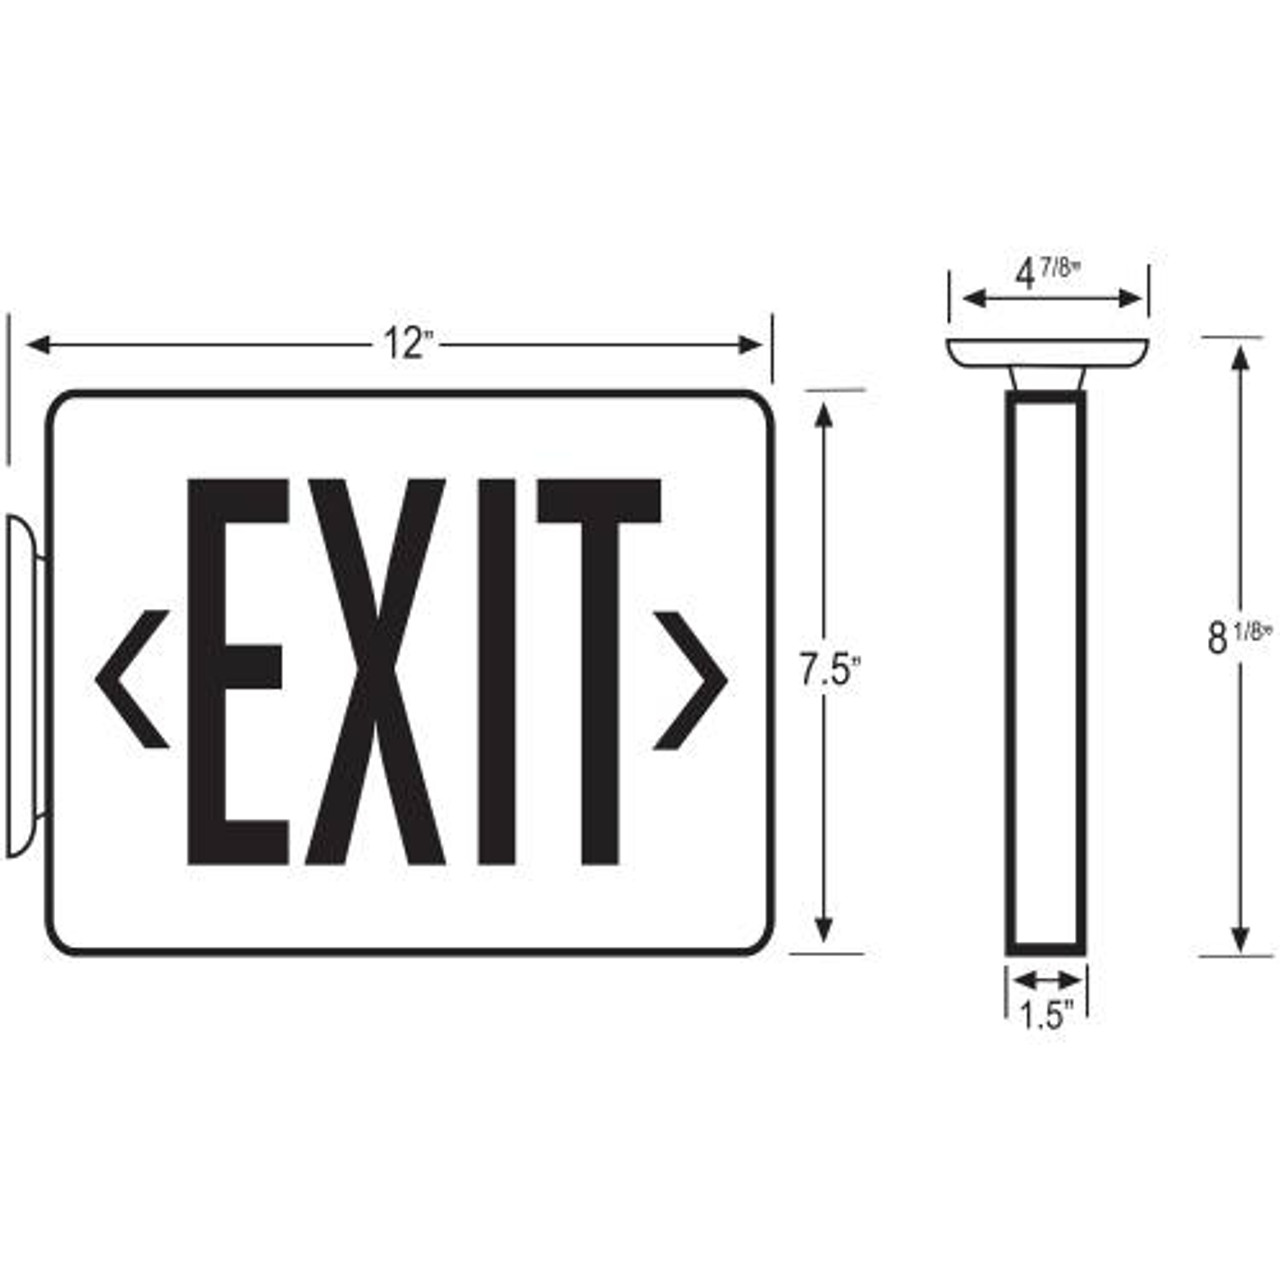 LED Exit Sign with Battery Backup Dimensions